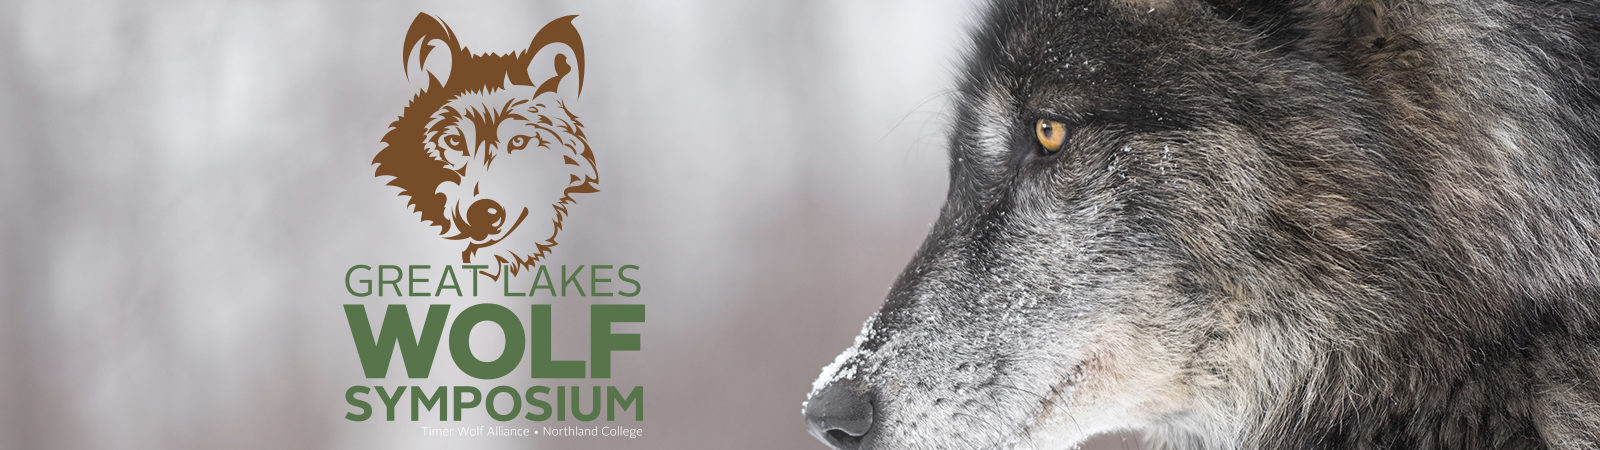 wolf in winter with symposium logo